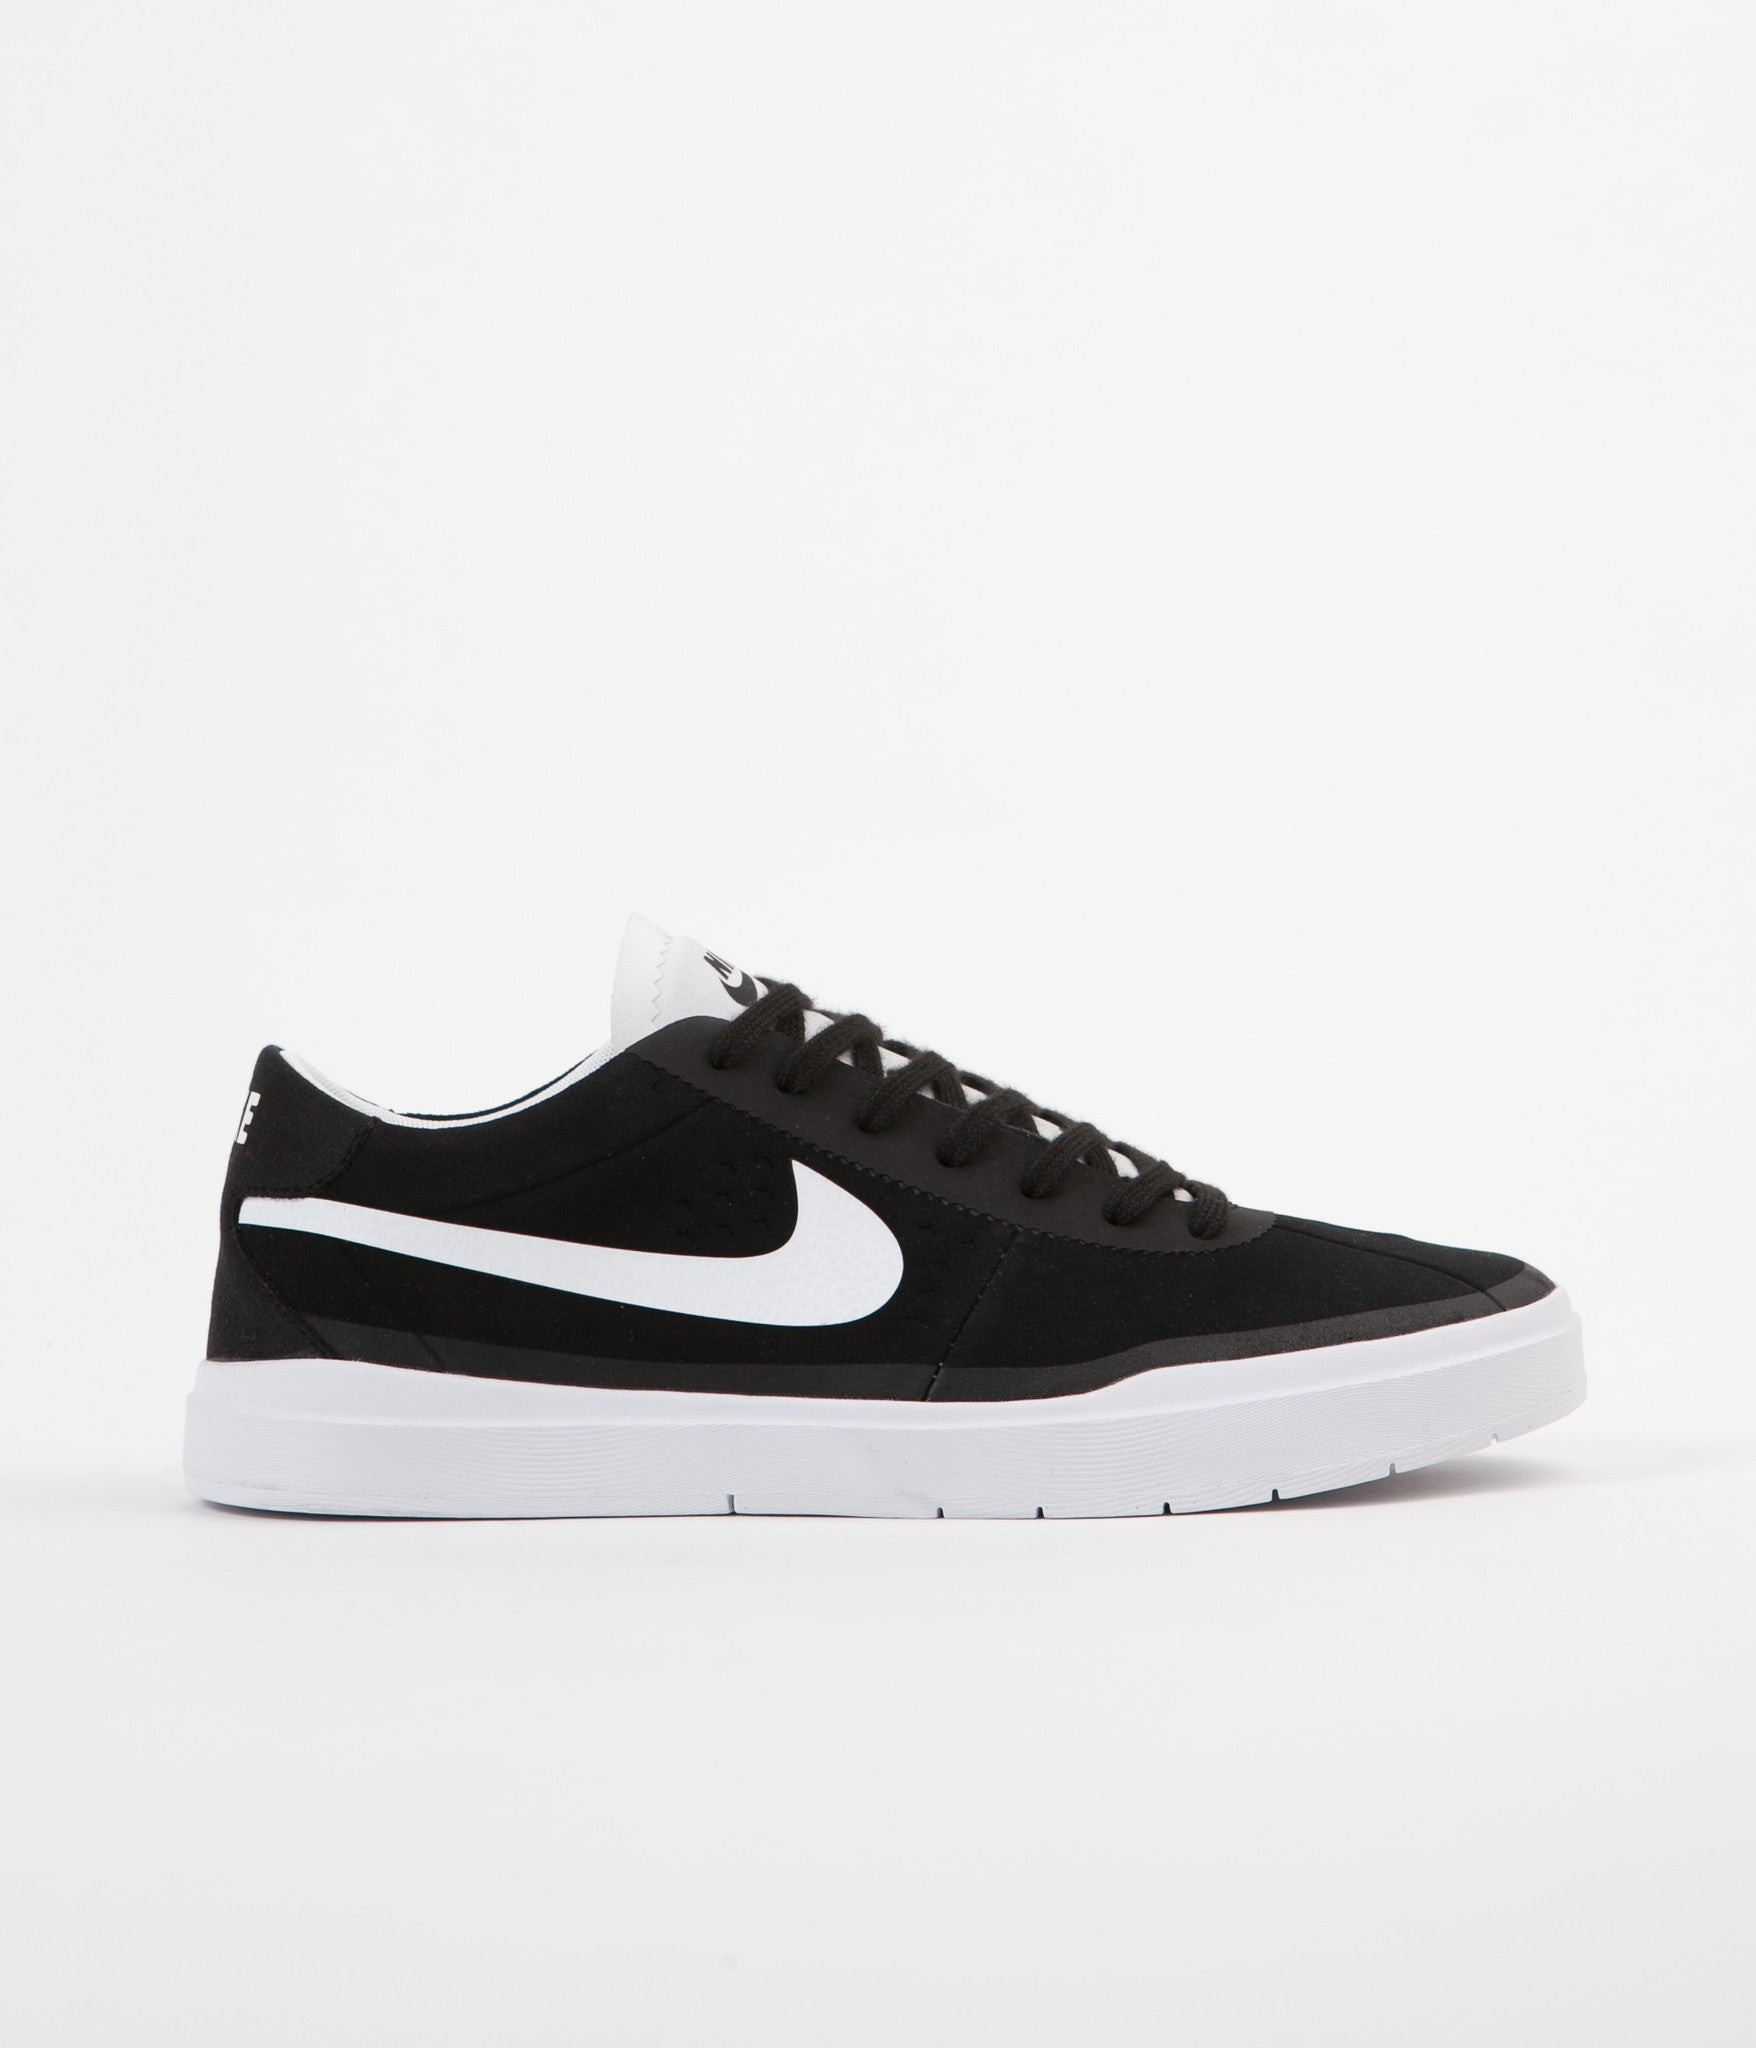 20e89378741 Nike SB Bruin Hyperfeel Shoes - Black   White - White